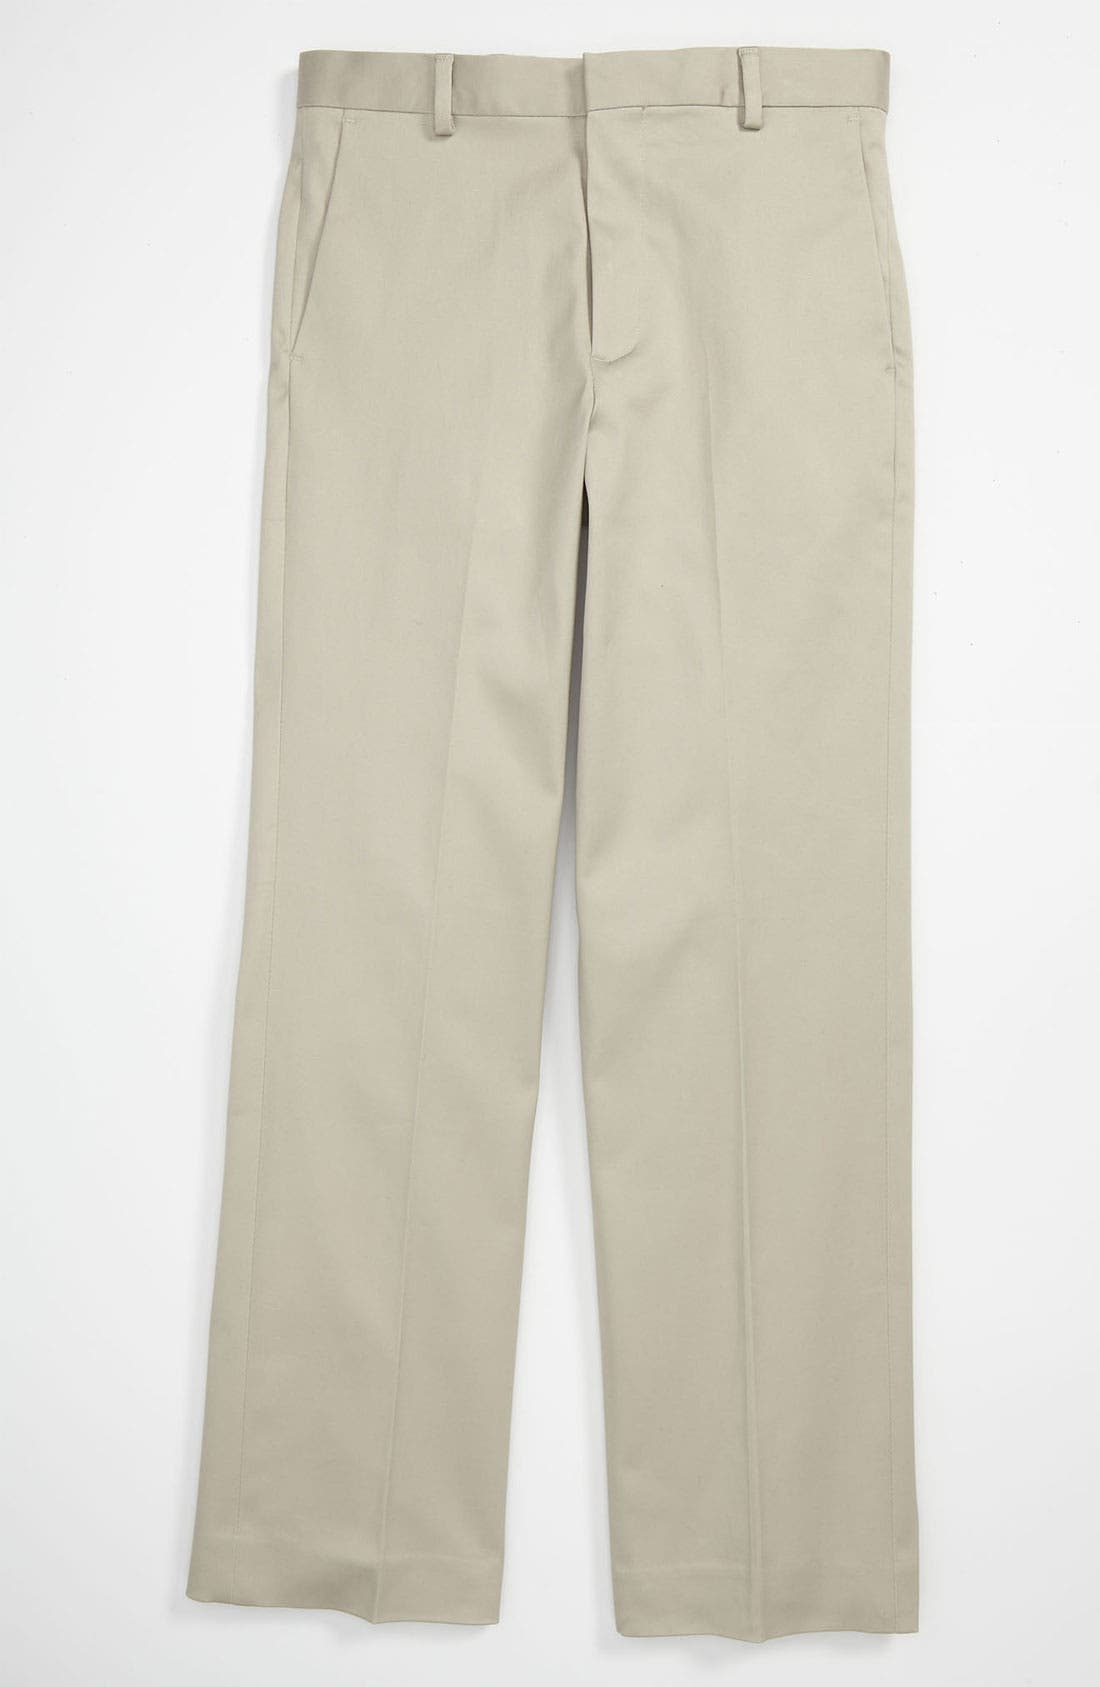 Alternate Image 1 Selected - C2 by Calibrate Flat Front Sateen Pants (Little Boys)